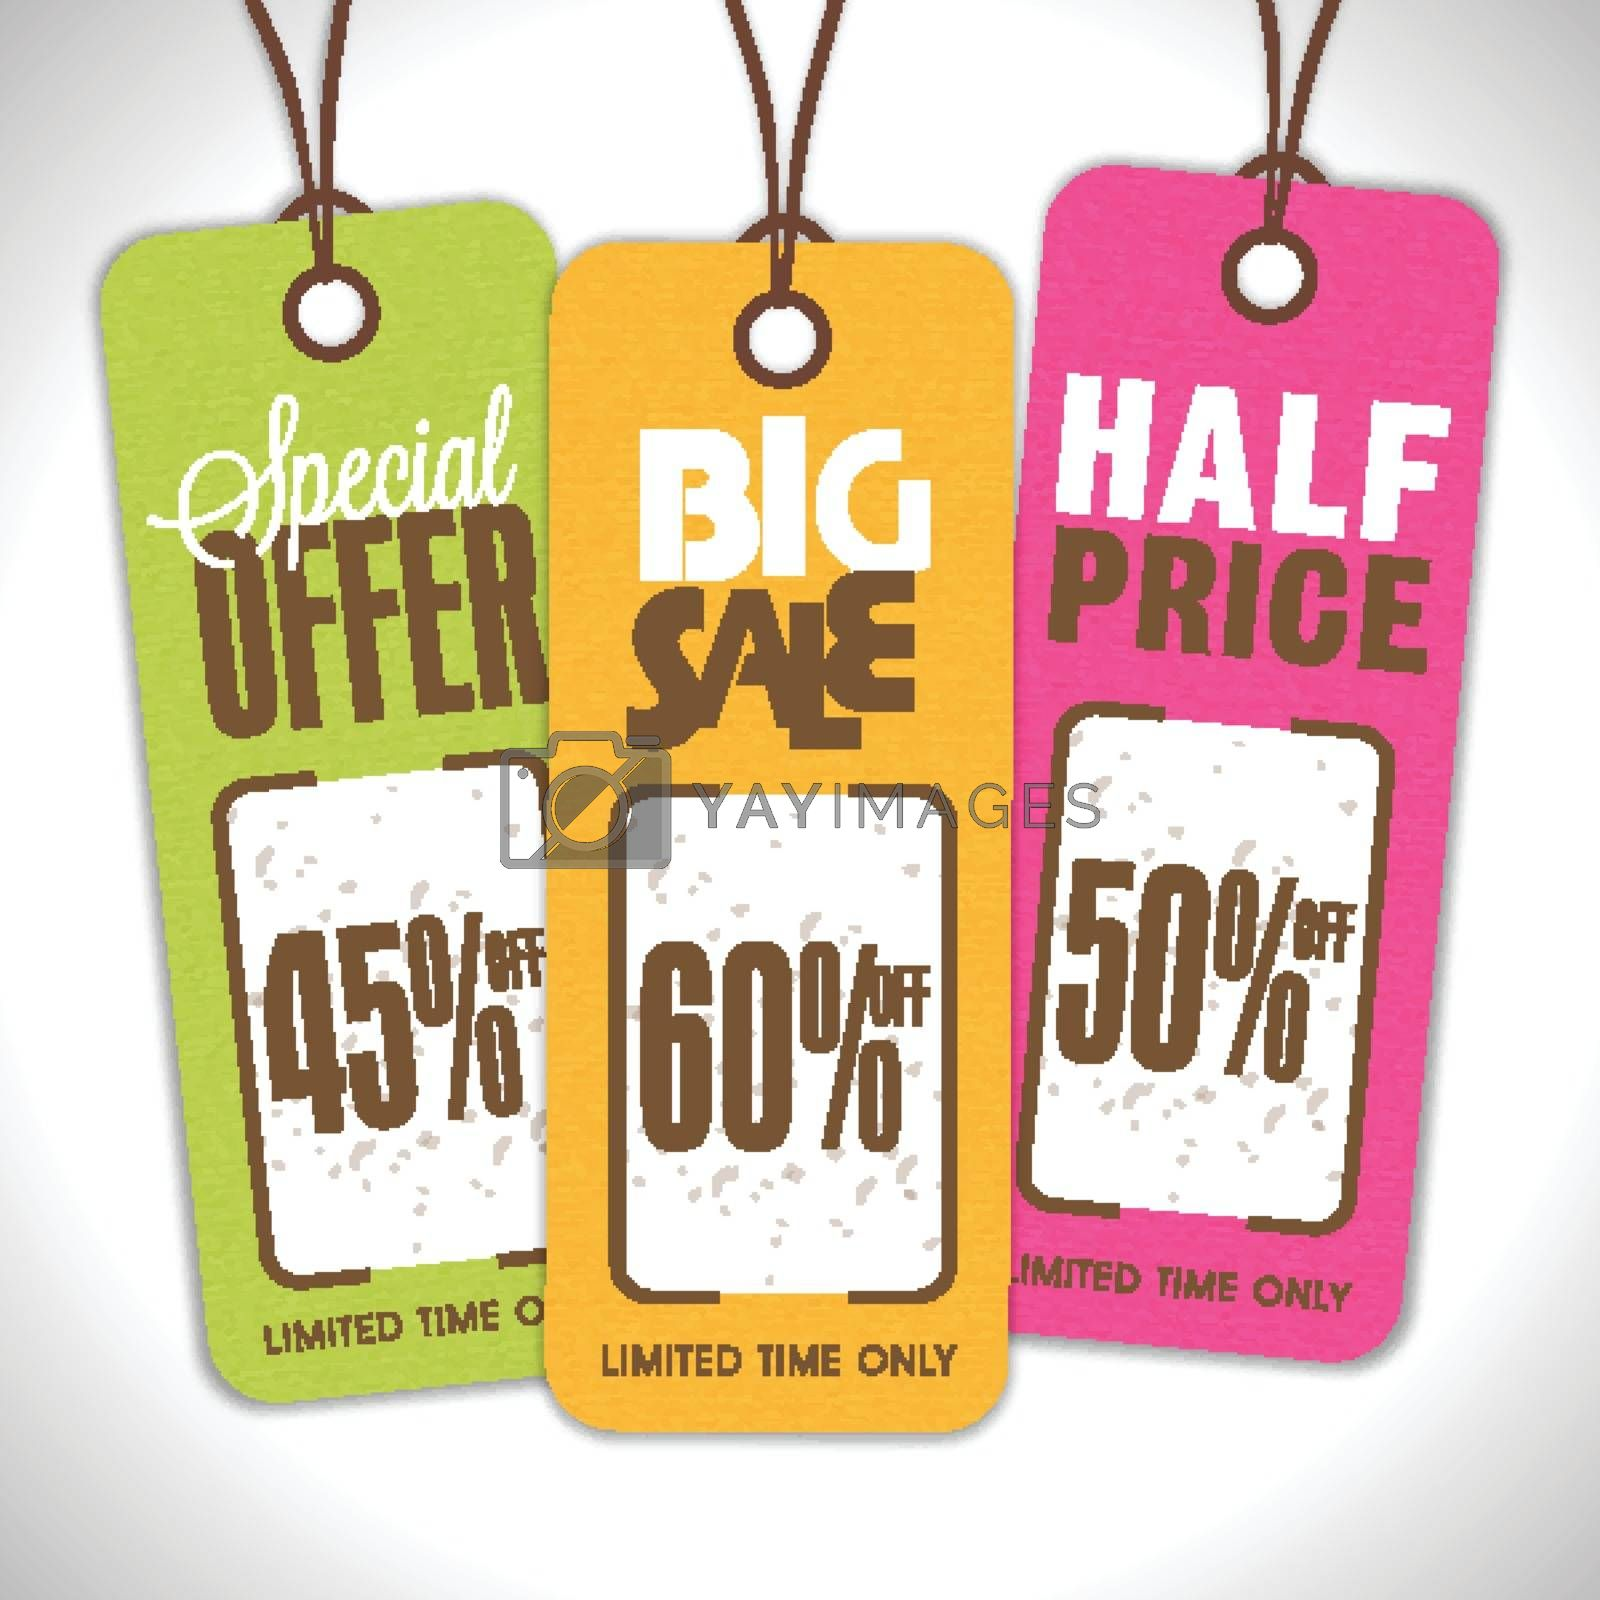 Set of Vintage style, Sale Tags with Special Offers for Limited Time Only. Vector illustration.